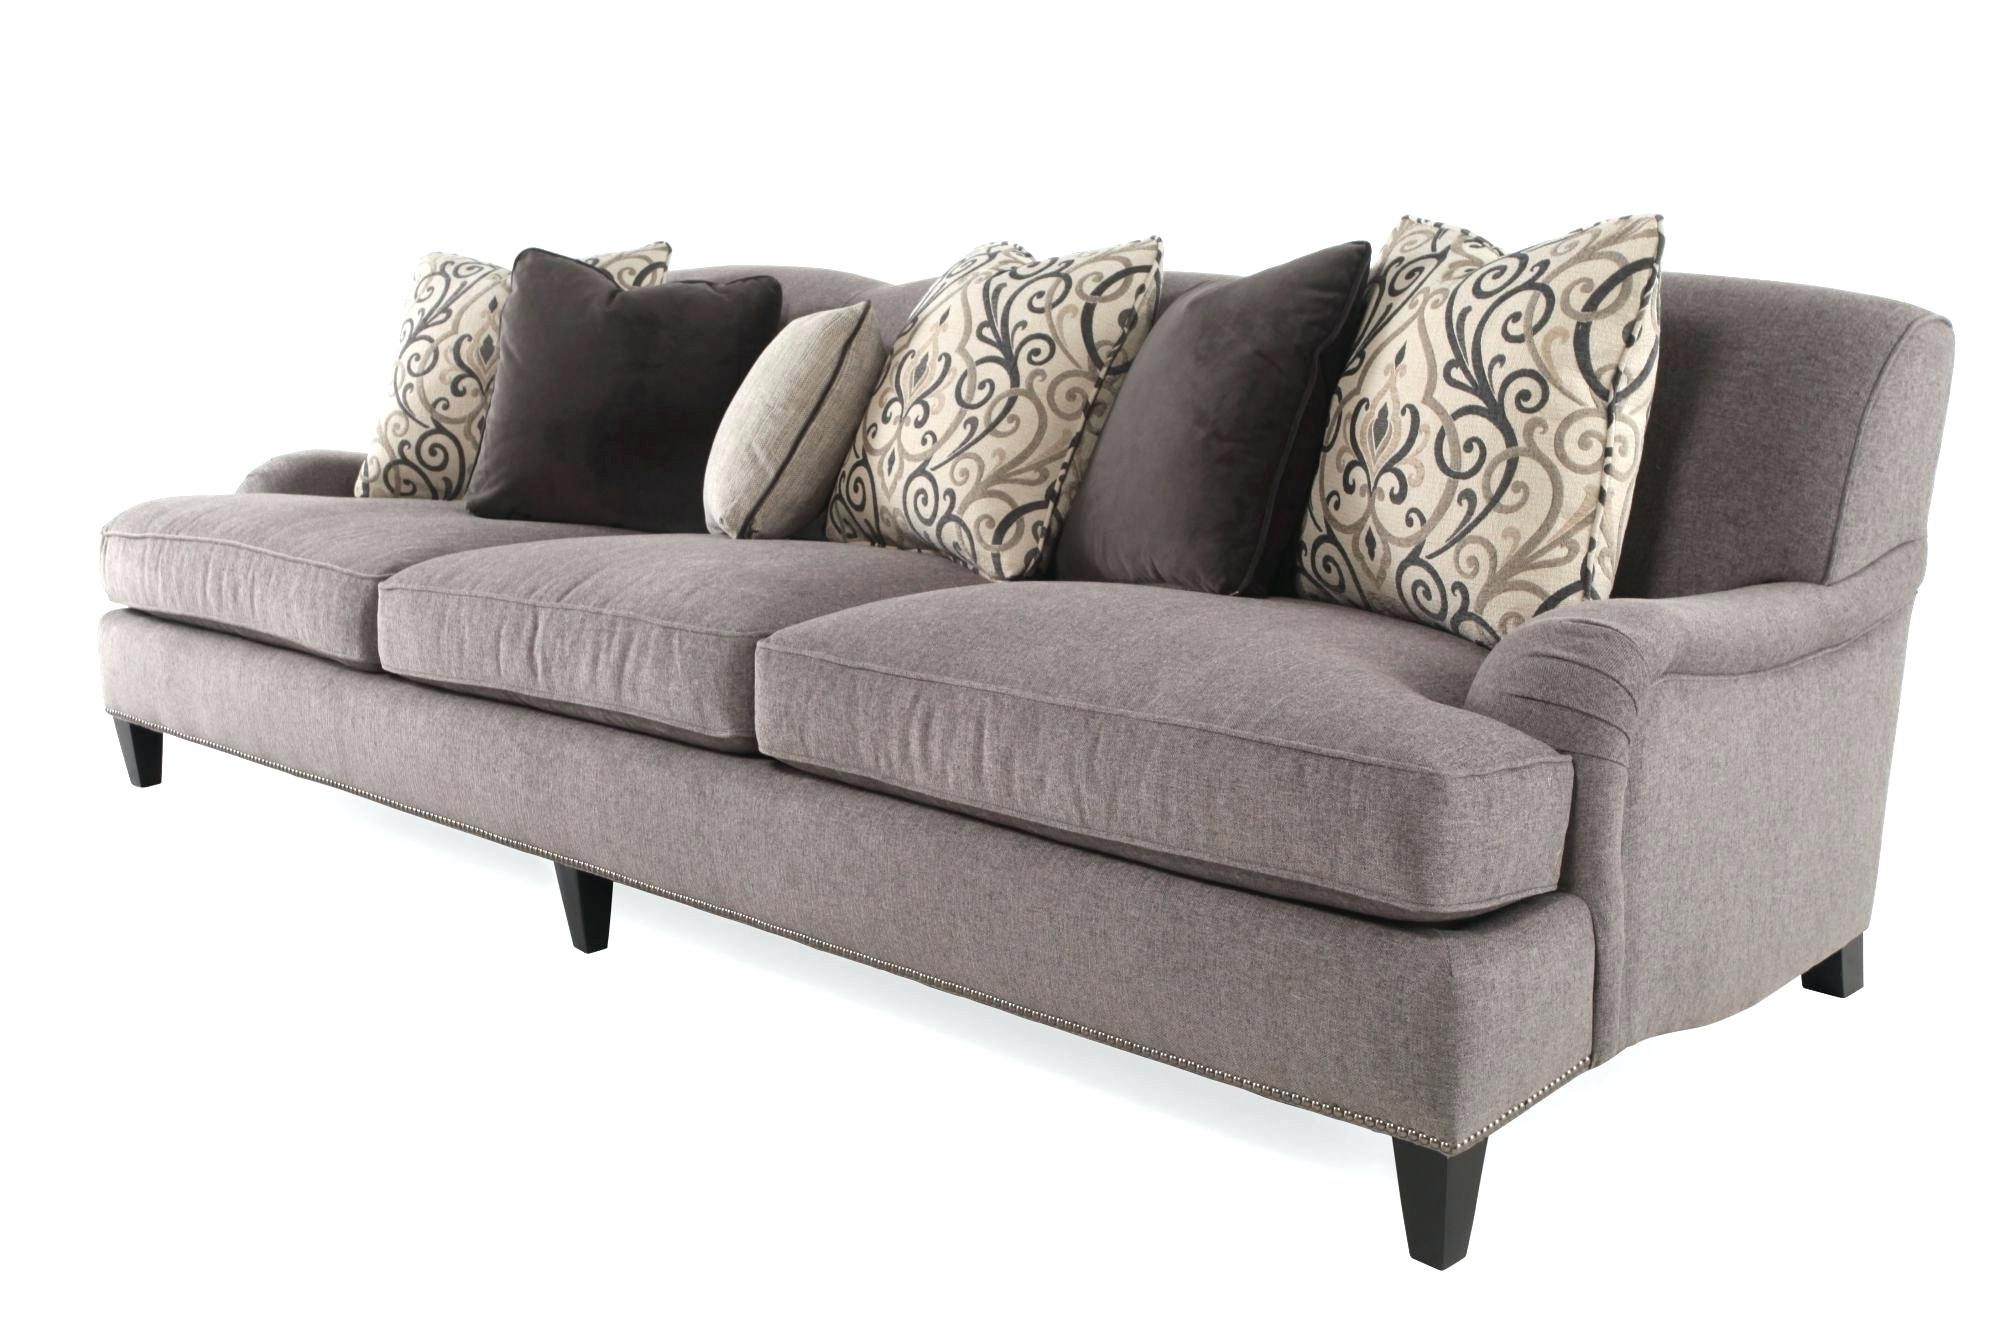 Popular Dillards Sectional Sofas Throughout Bernhardt Sofa Leather And Fabric Alisa Reviews La Paz Table (View 4 of 15)